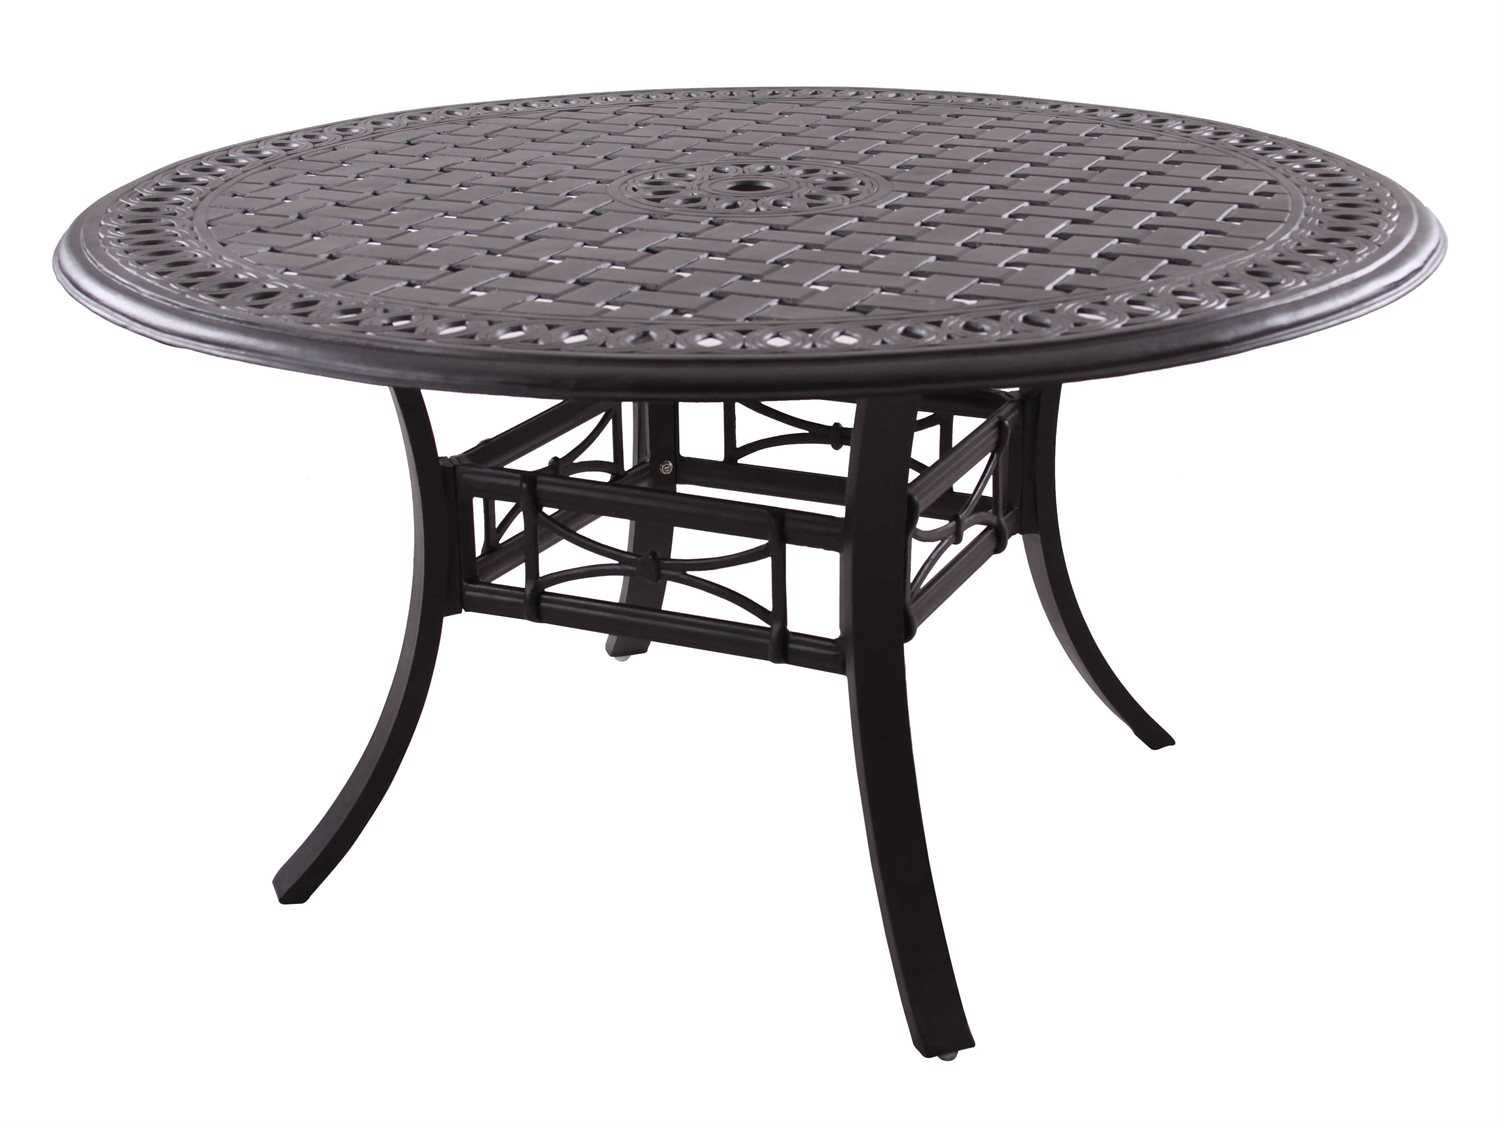 Best ideas about Round Patio Dining Table . Save or Pin Darlee Outdoor Living Series 88 Cast Aluminum Antique Now.